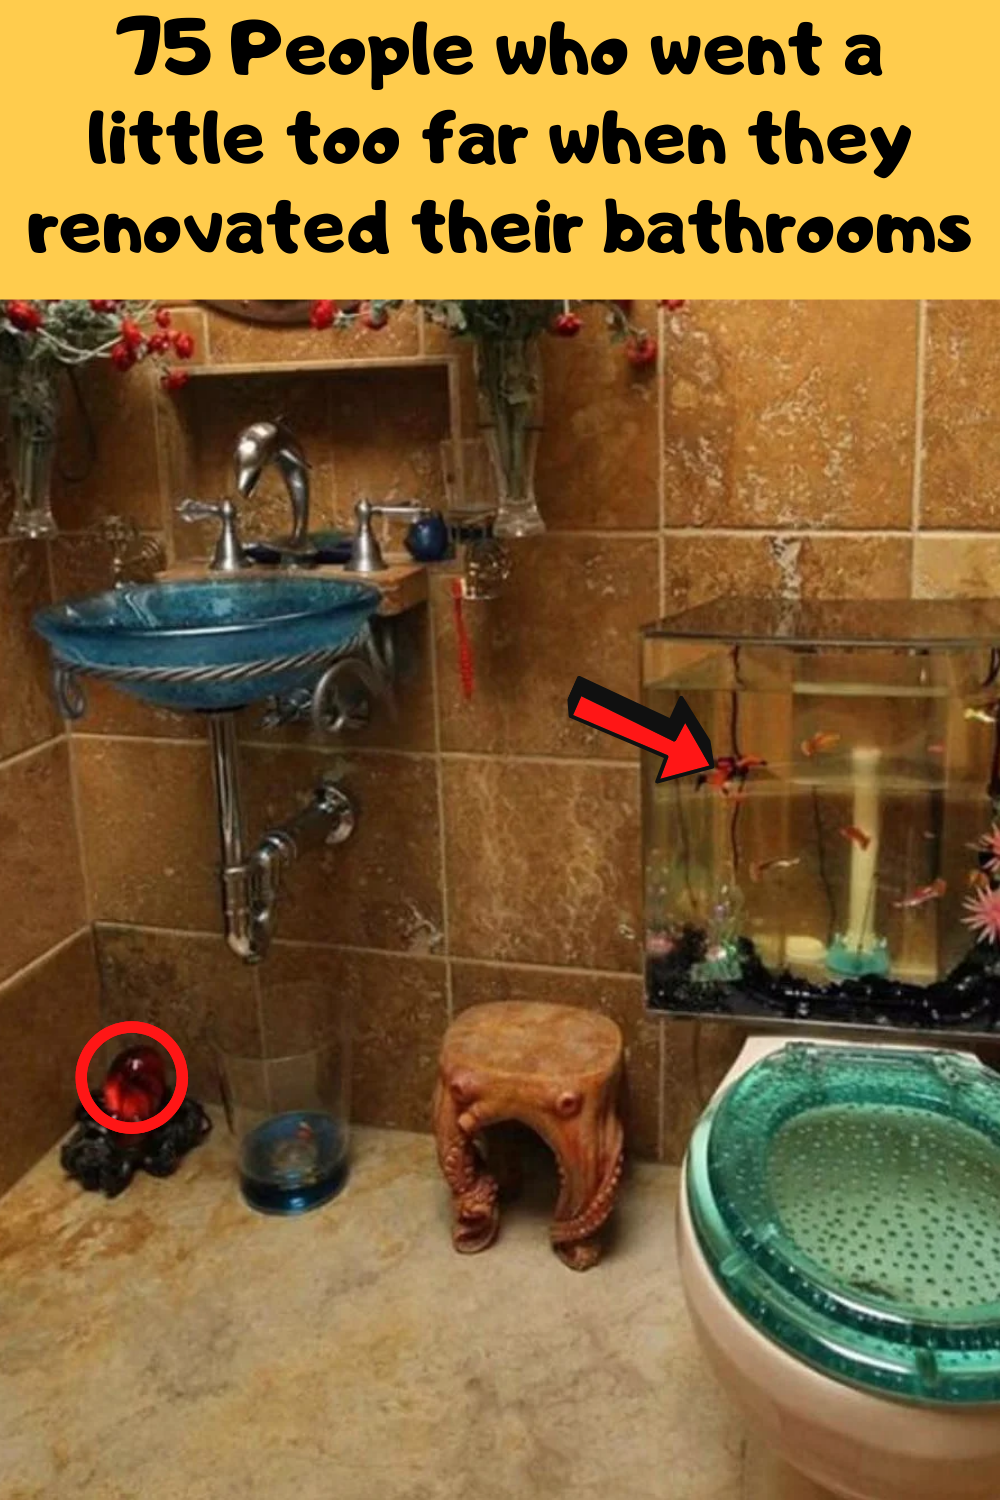 75 People who went a little too far when they renovated their bathrooms